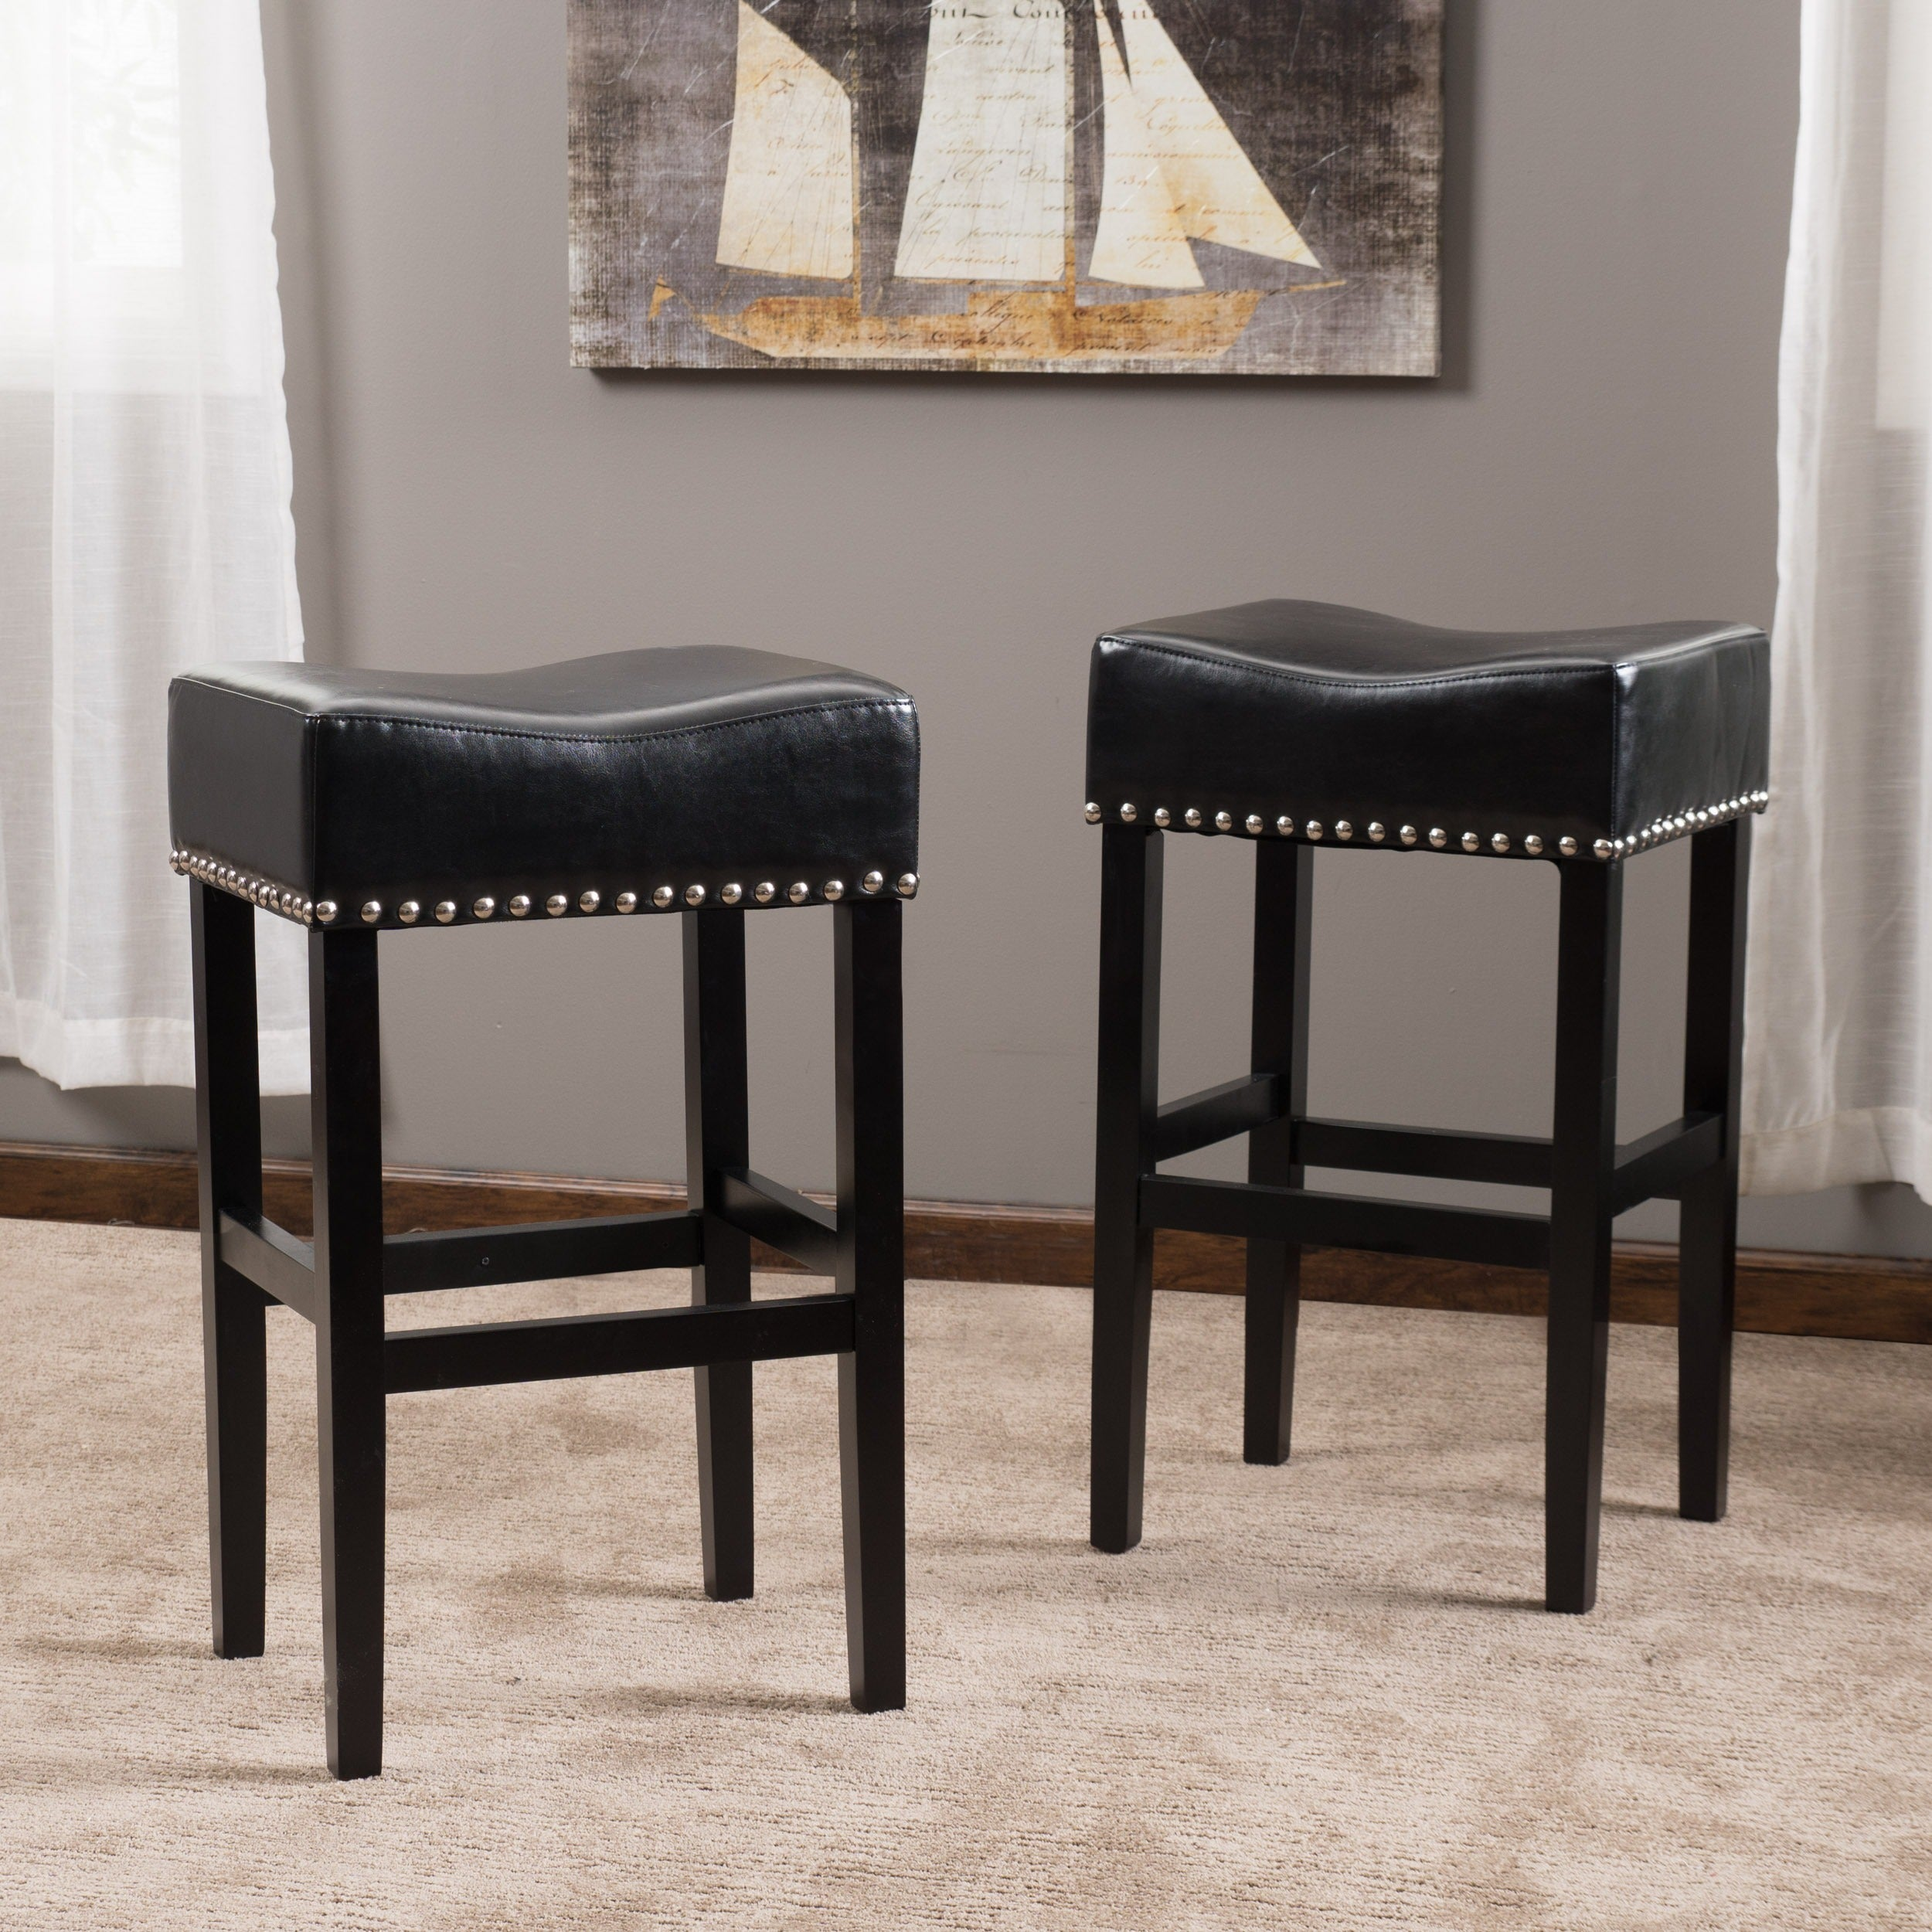 cherry kitchen black chairs height dark chair stools with bar stool leather wood counter back